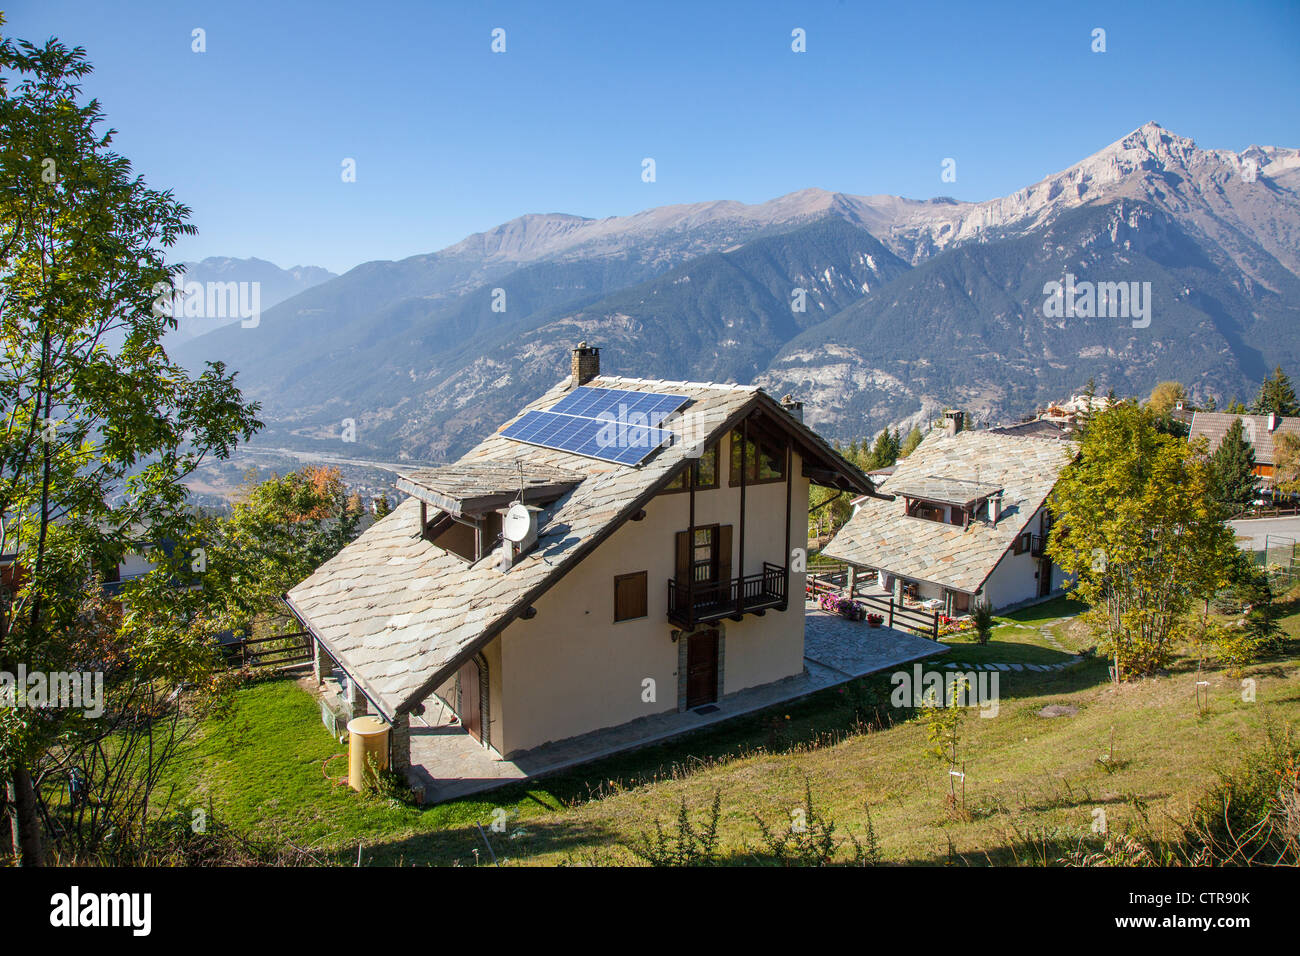 Alpine house with solar panels in the ski resort of Sauze d'Oulx, Piemonte, Italy - Stock Image